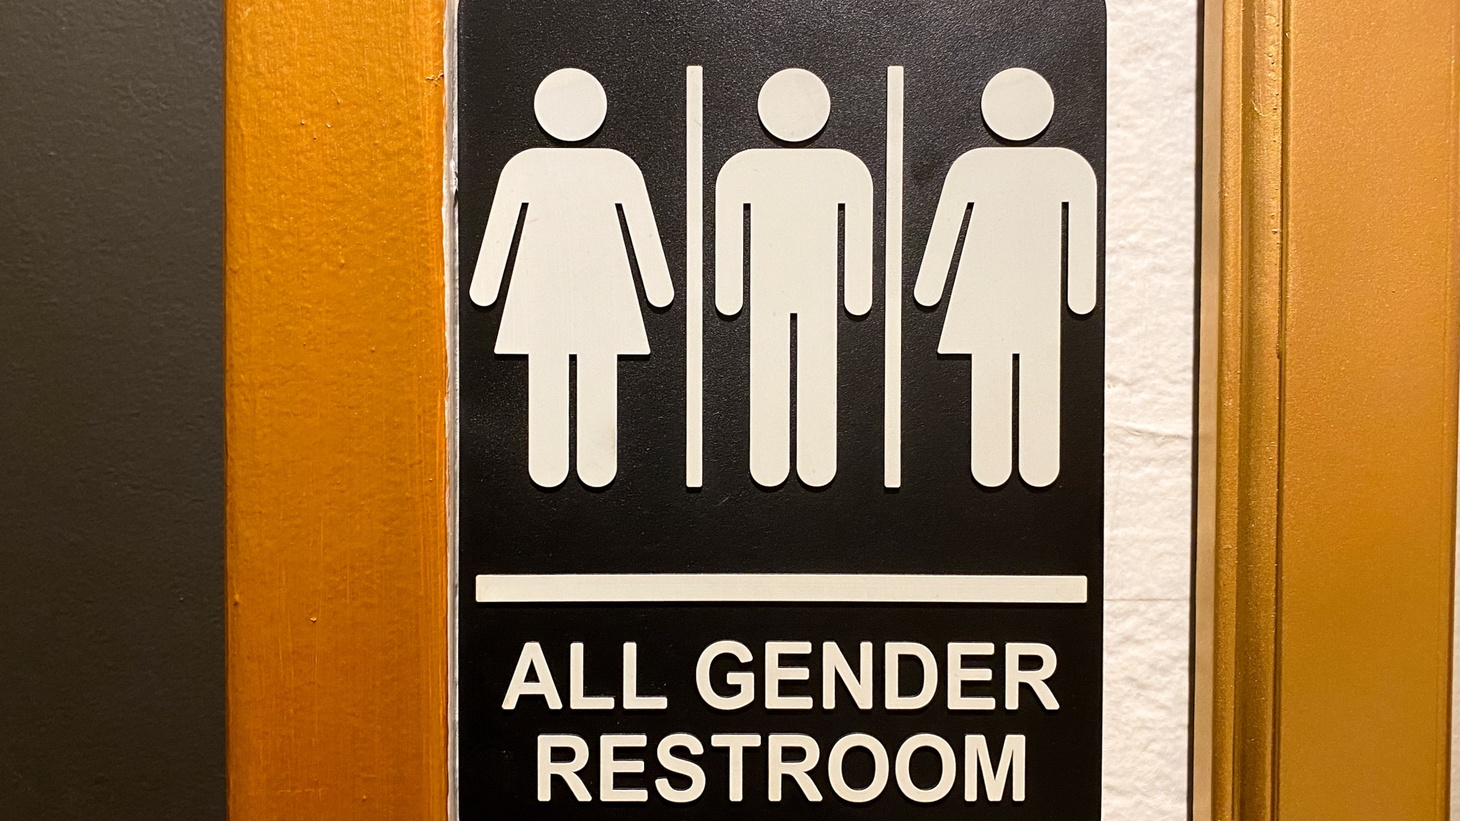 A sign for an all-gender restroom is seen.